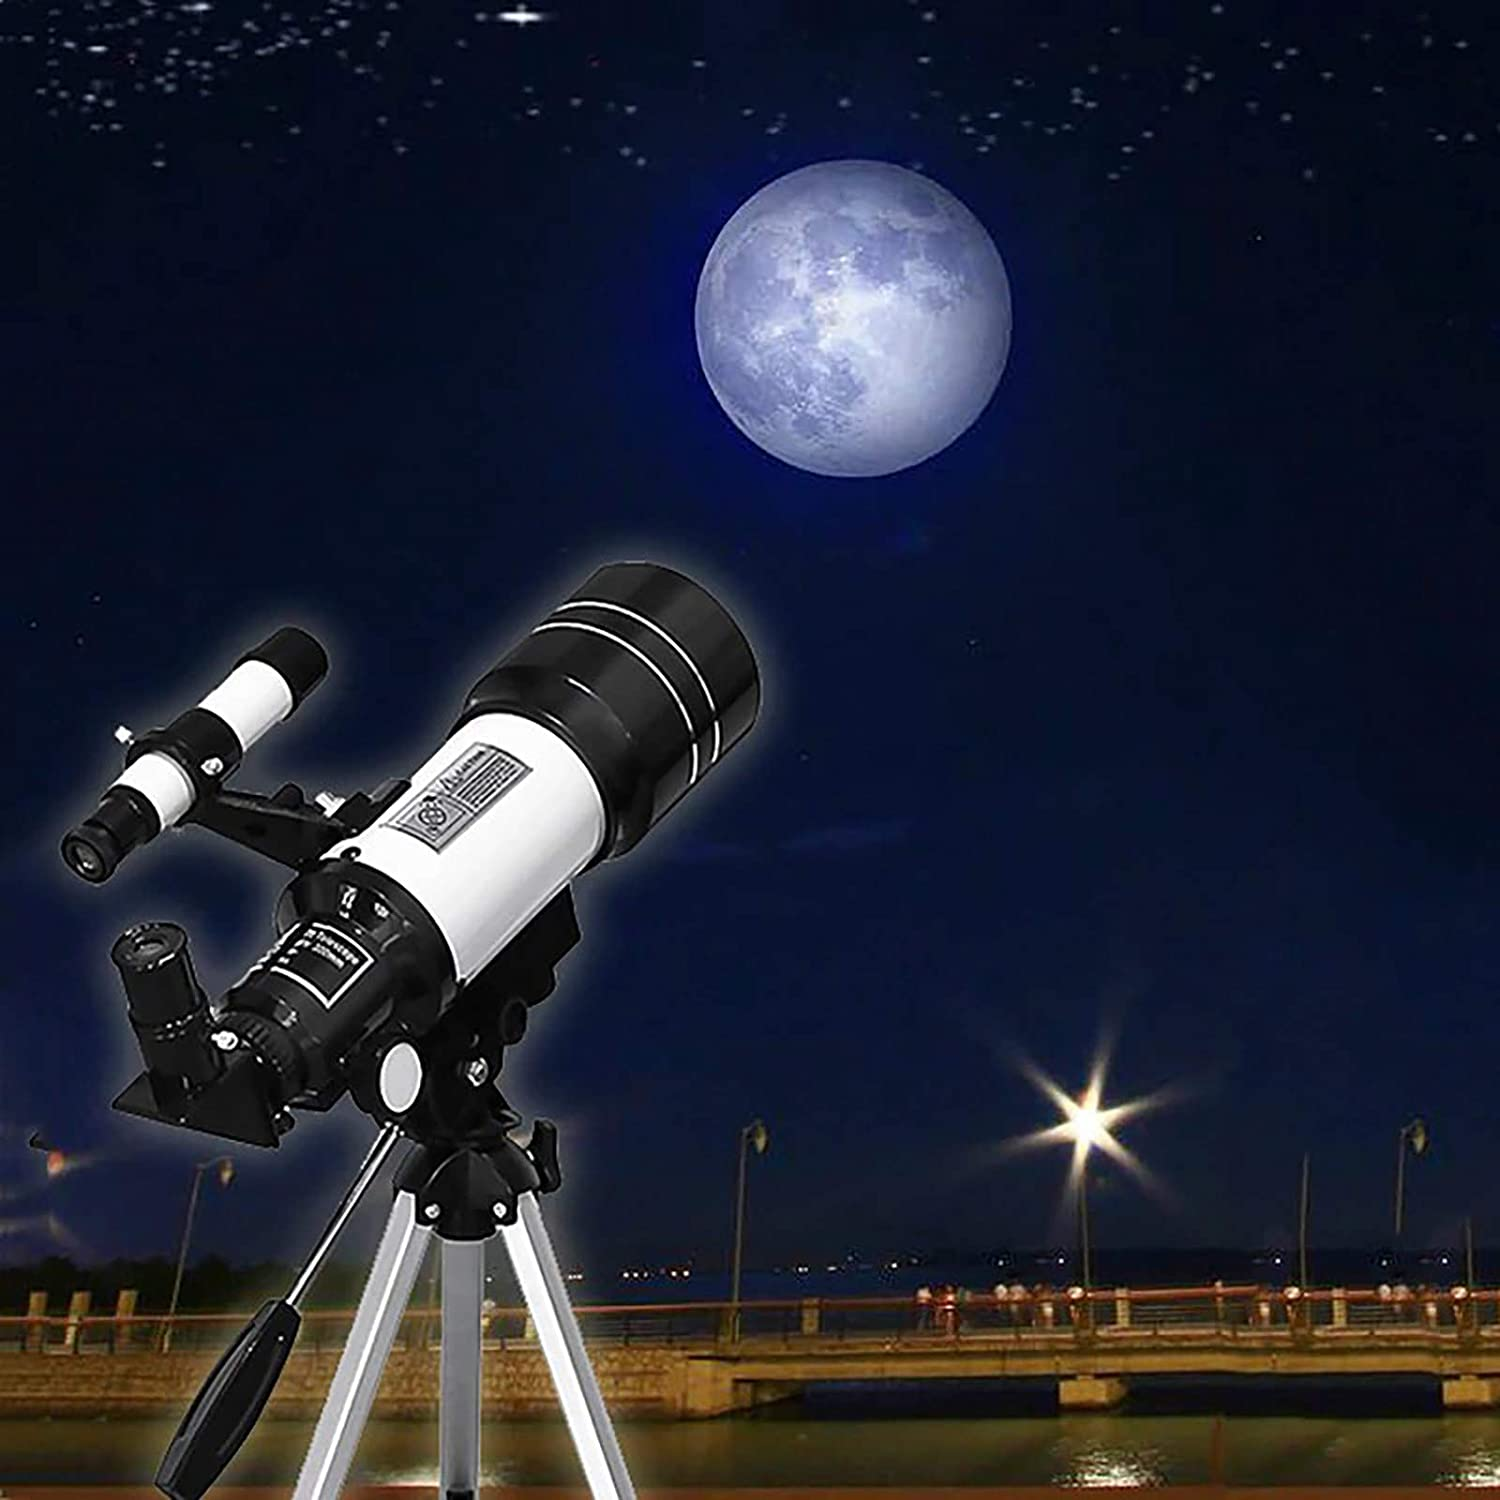 70mm Aperture Telescope with Tripod Astronomical Refracting Telescope for Astronomy Beginners Telescope for Adults Astronomy Gifts Travel Telescope with 2 Magnification Eyepieces